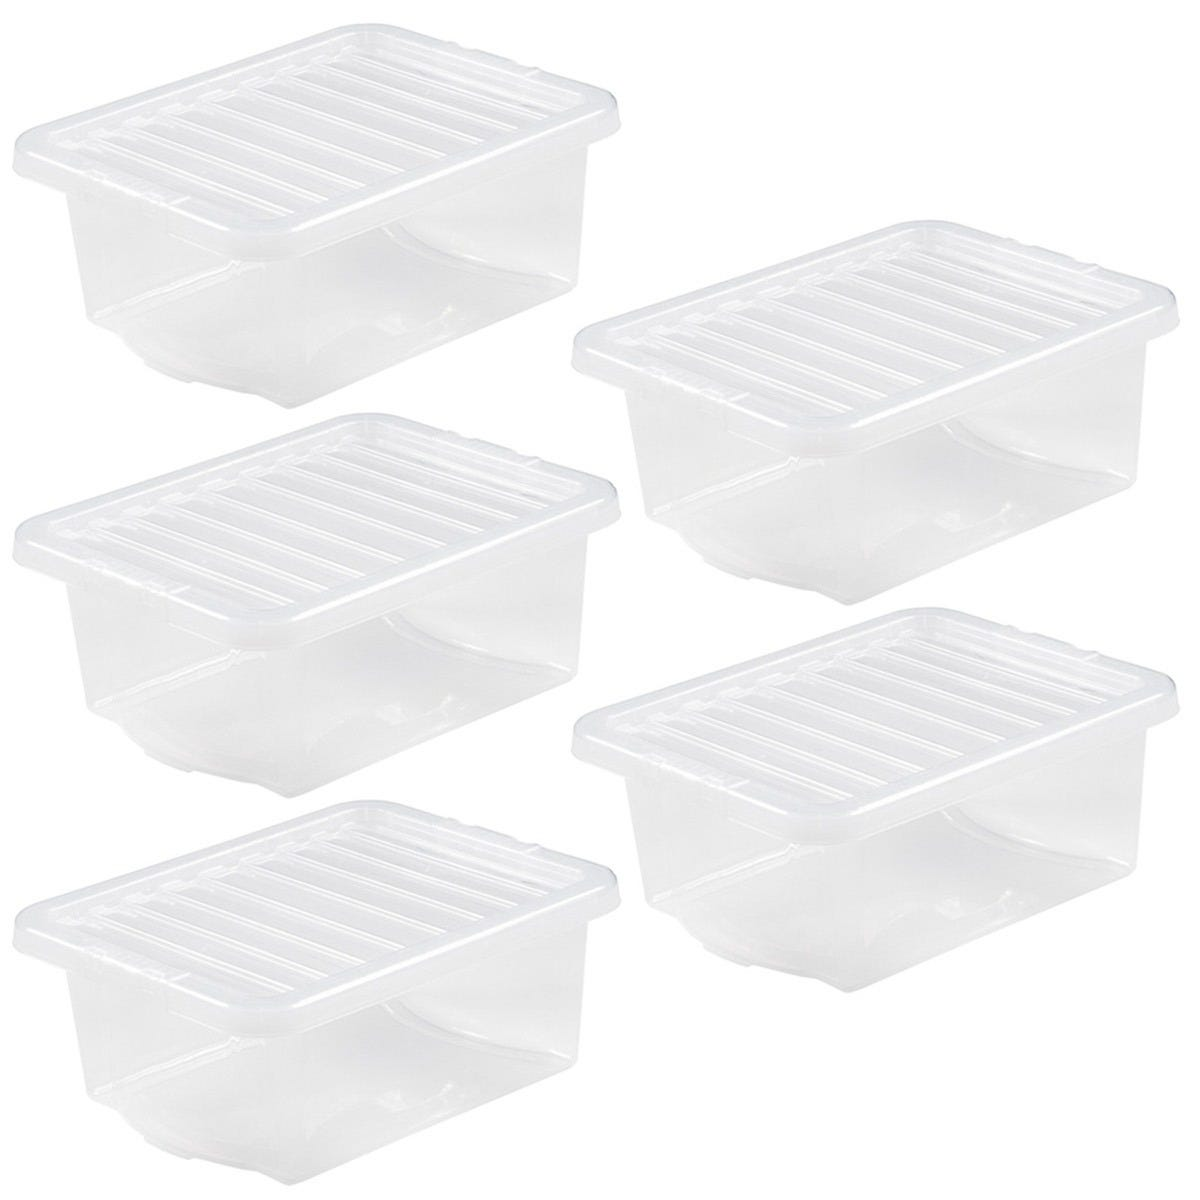 Wham Crystal Clear Storage Box with Lid 16L - Set of 5